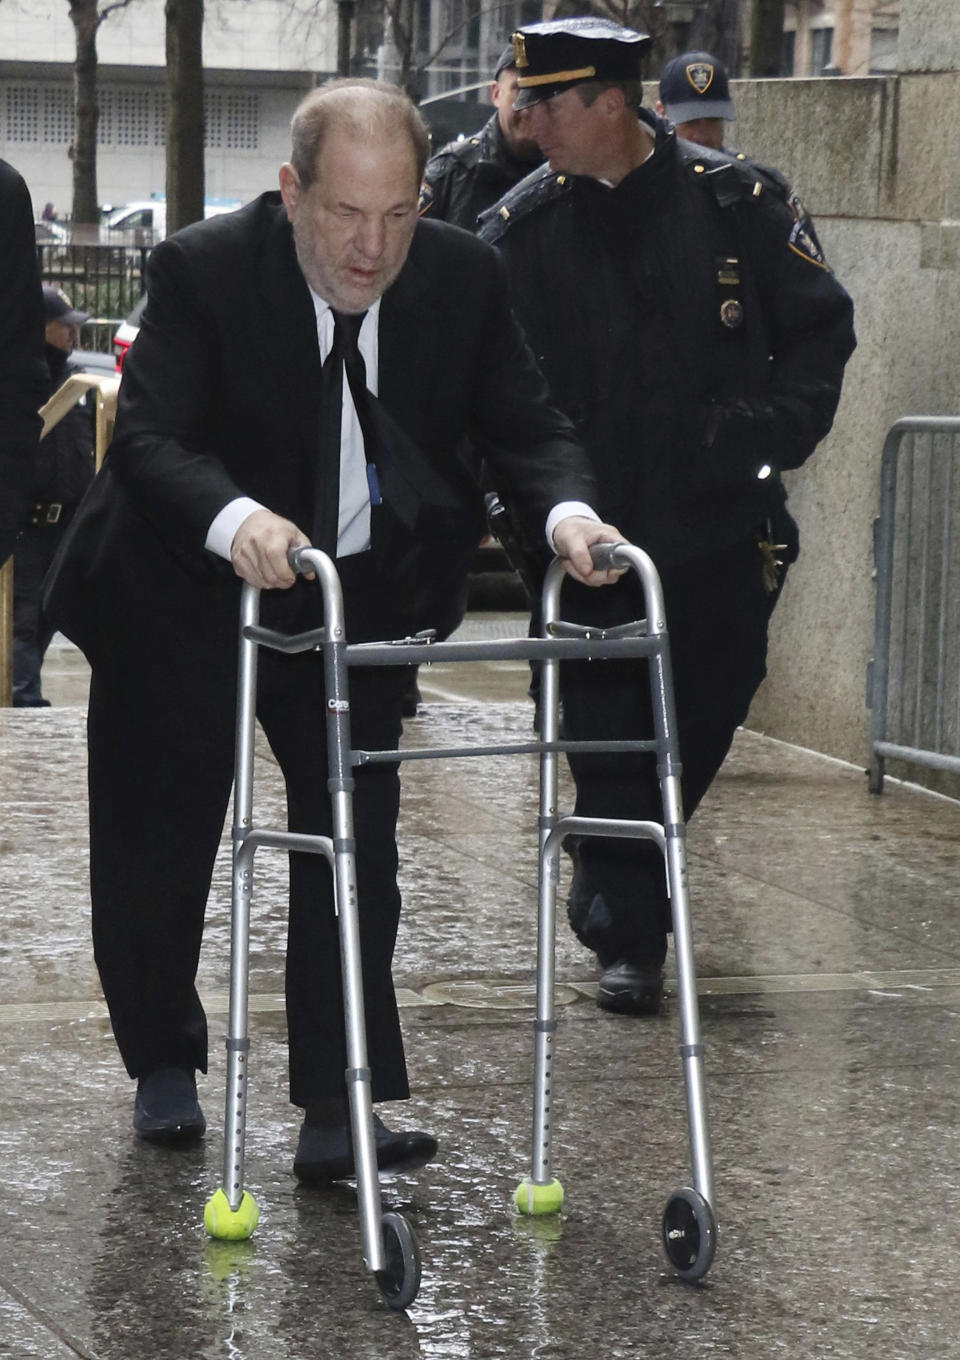 ***FILE PHOTO*** Harvey Weinstein To Face New Rape Lawsuits Including 17 Year-Old. NEW YORK, NY- January 16: Harvey Weinstein arrives for jury selection at Manhattan Supreme Court for for his trail on January 16, 2020 in New York City. Credit: RW/MediaPunch /IPX